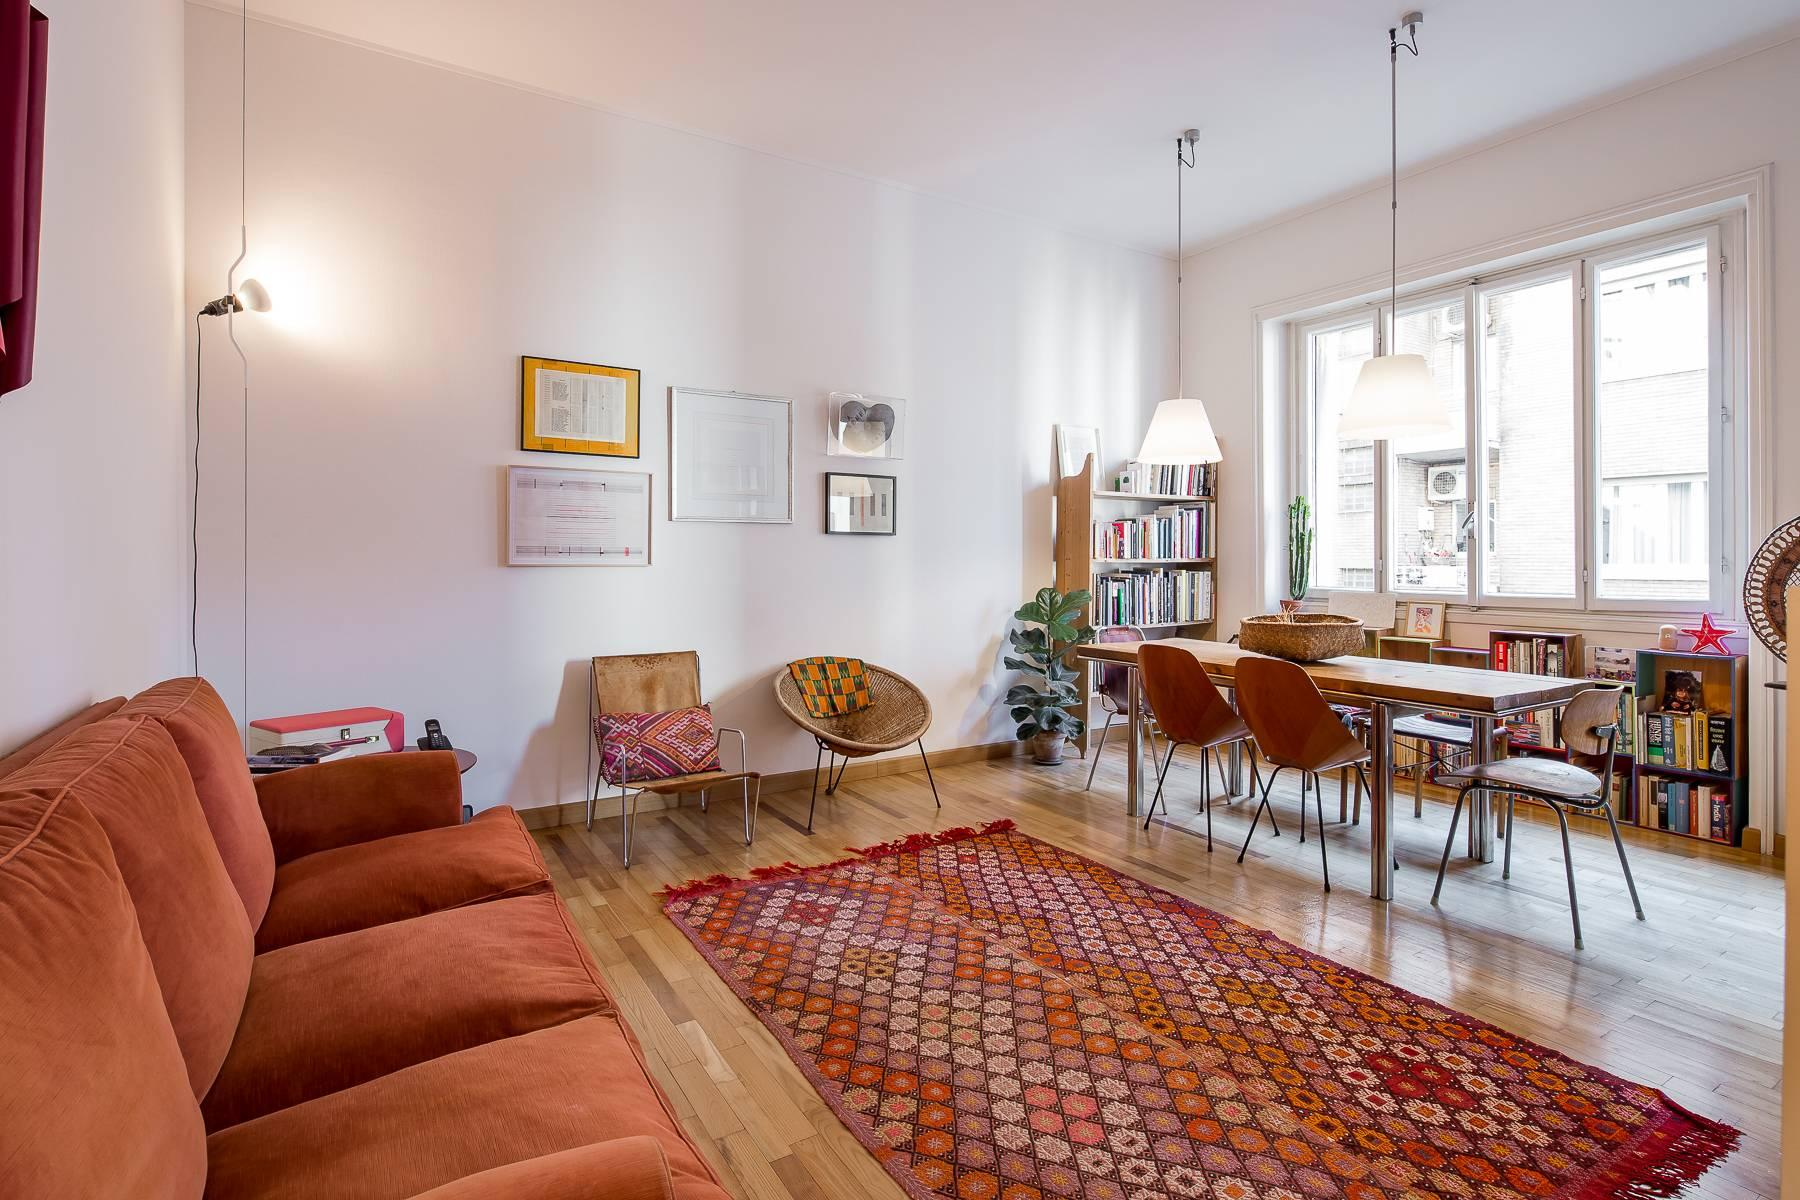 Bright, renovated two-bedroom apartment a stone's throw from the Duomo - 5